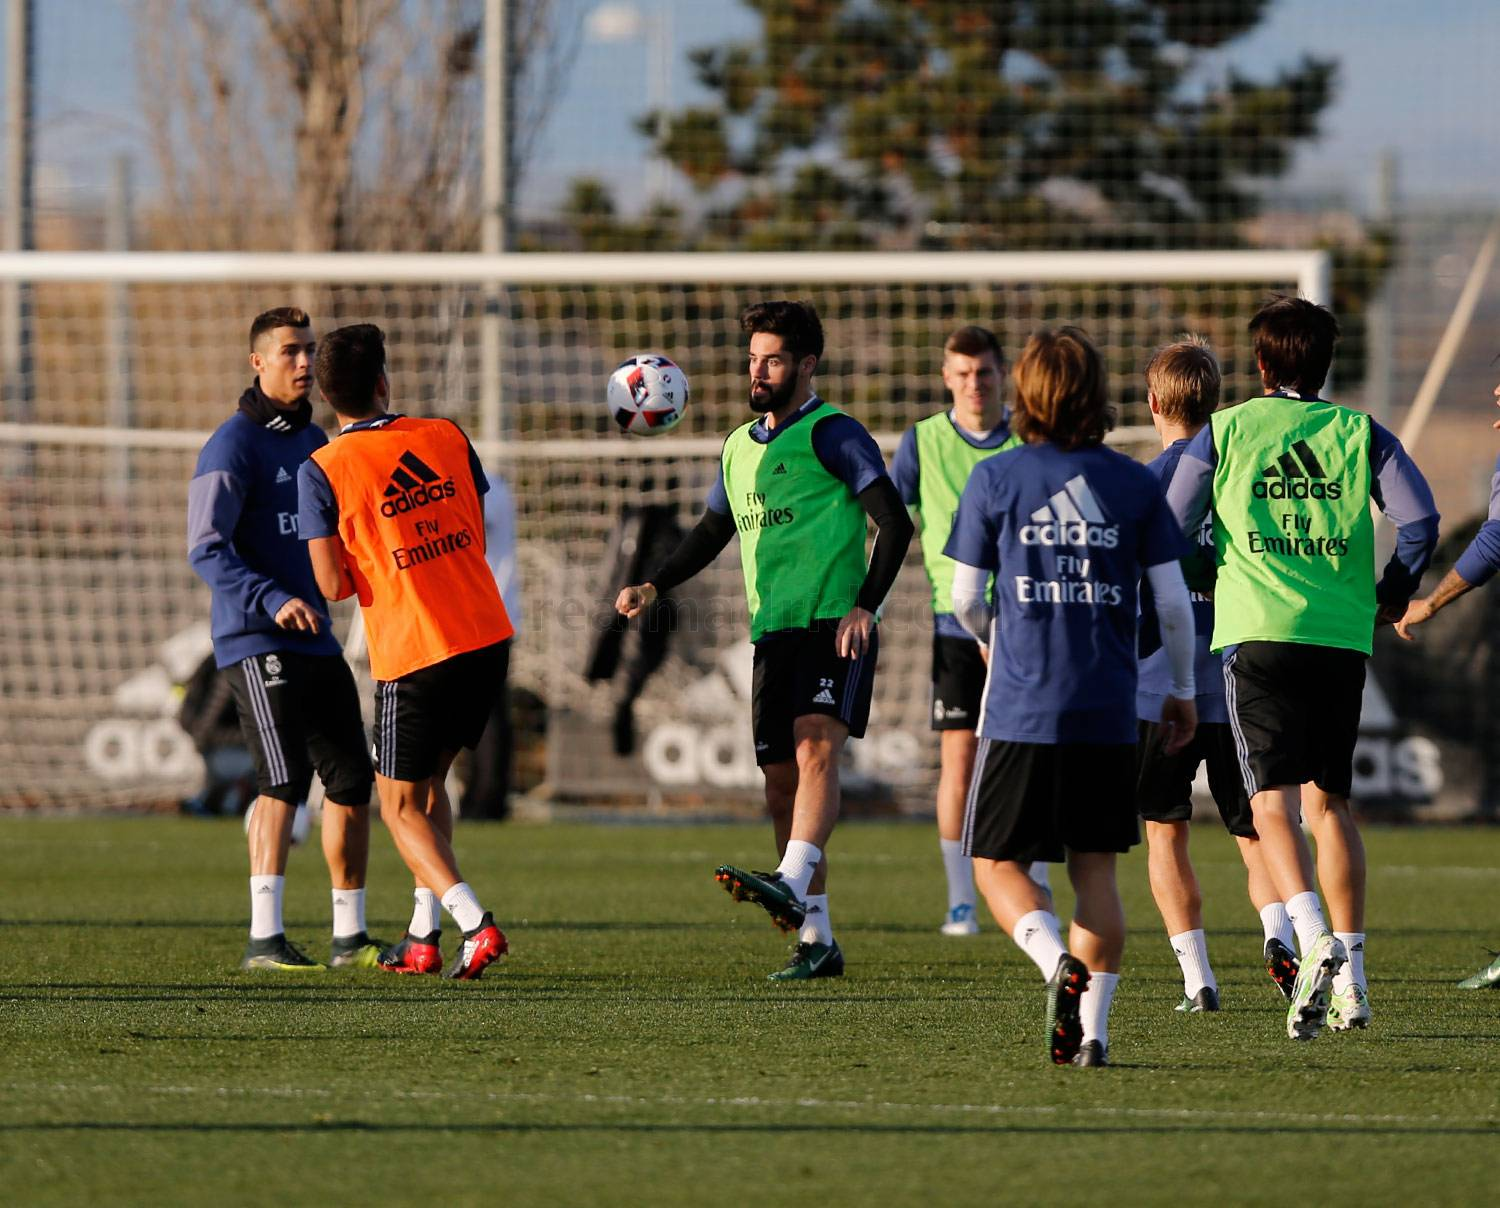 Real Madrid - Entrenamiento del Real Madrid - 27-12-2016